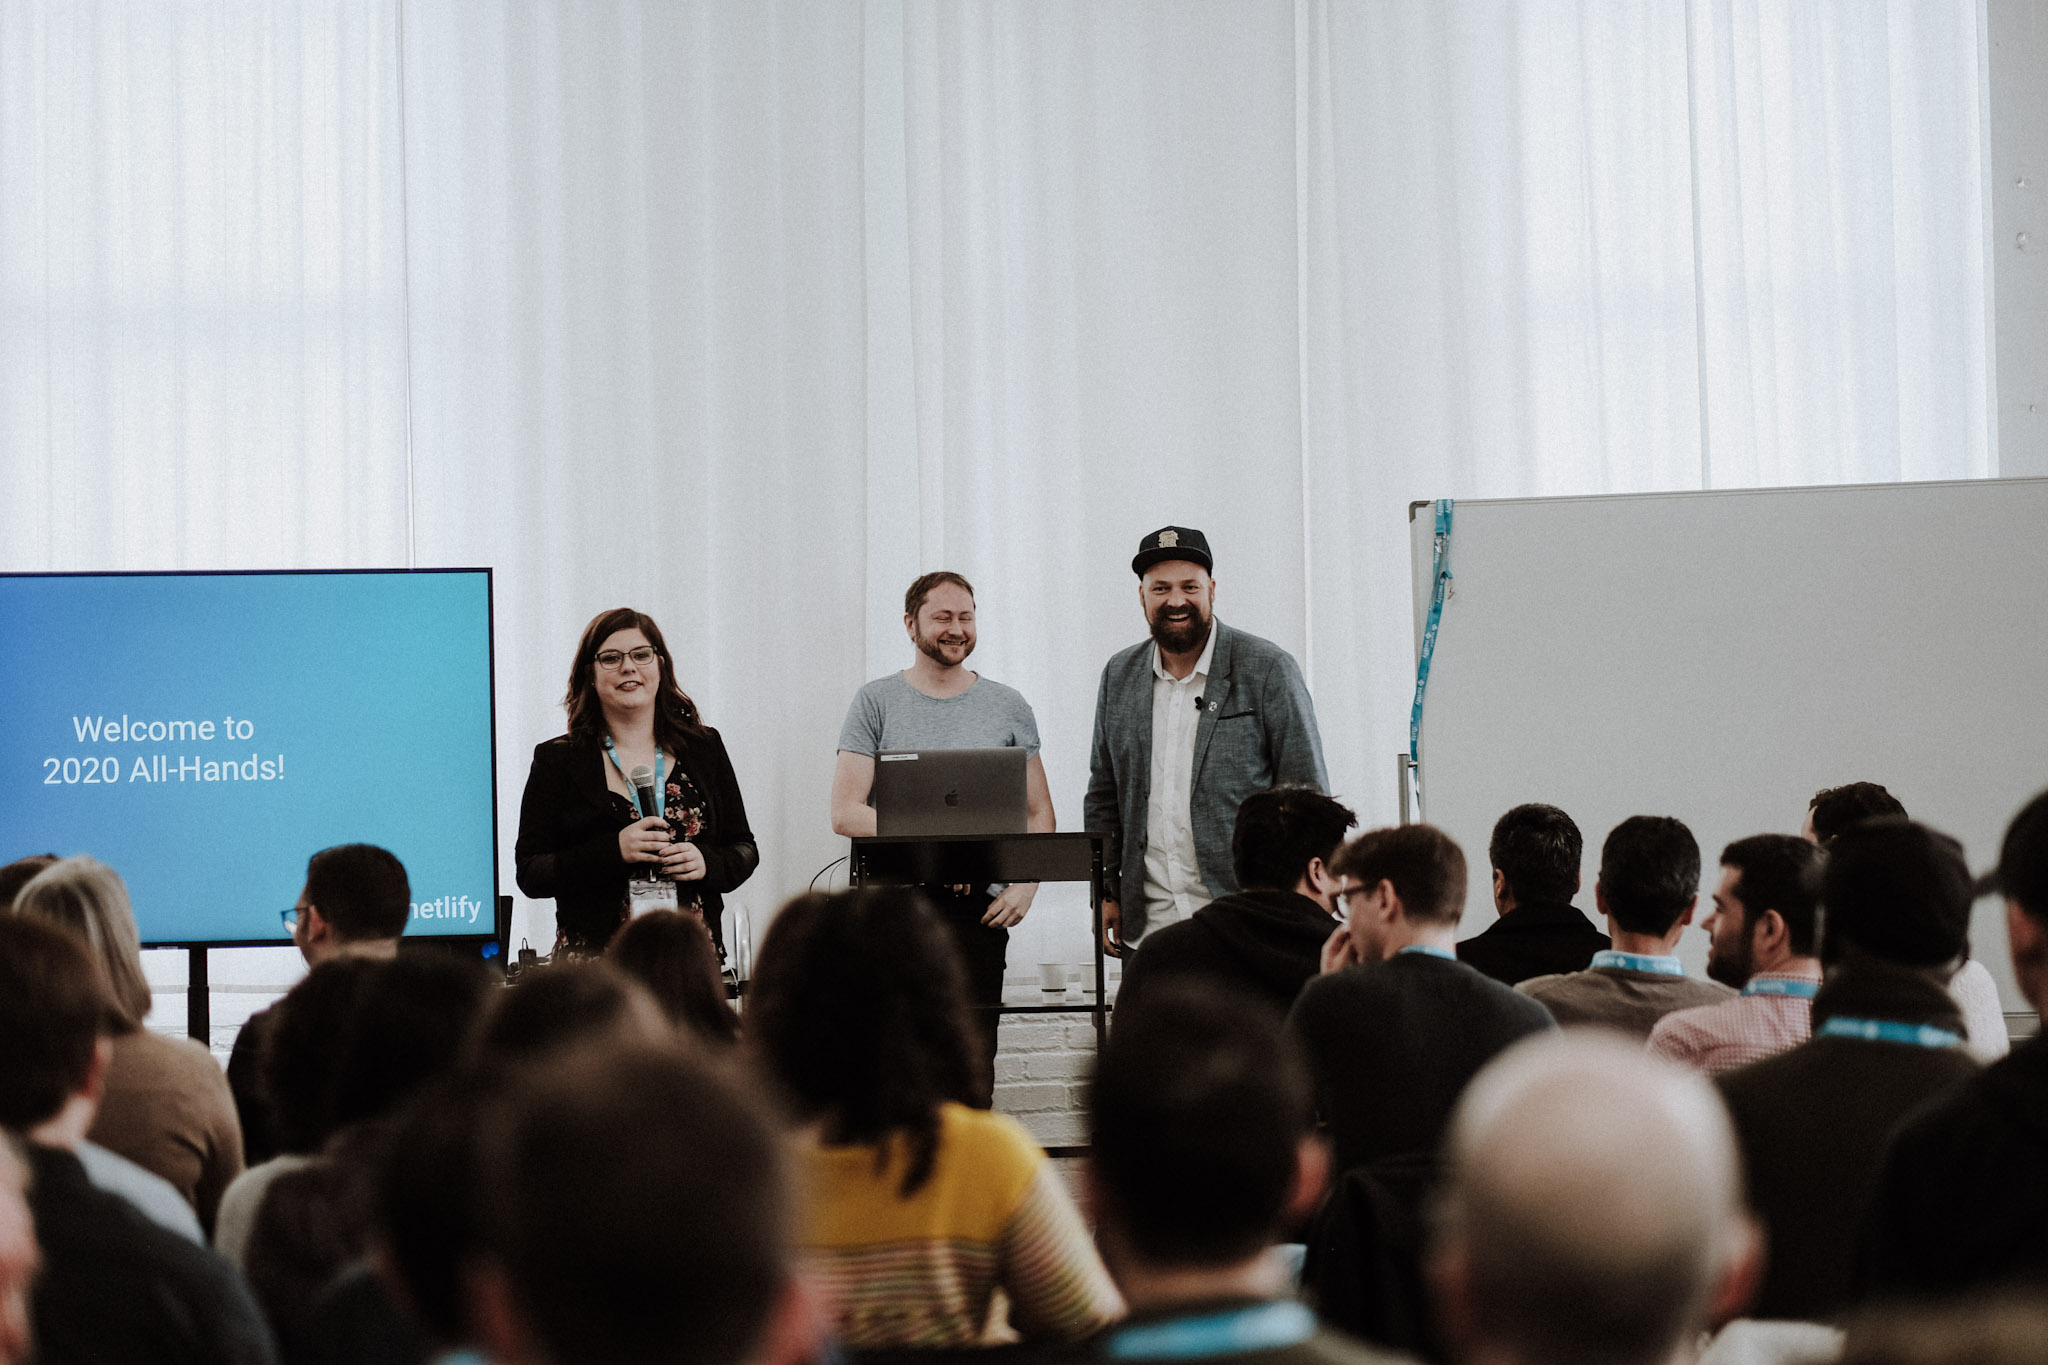 group of people seen sitting facing a stage. on stage are chris and mathias, netlify founders, and madeleine, our office manager.